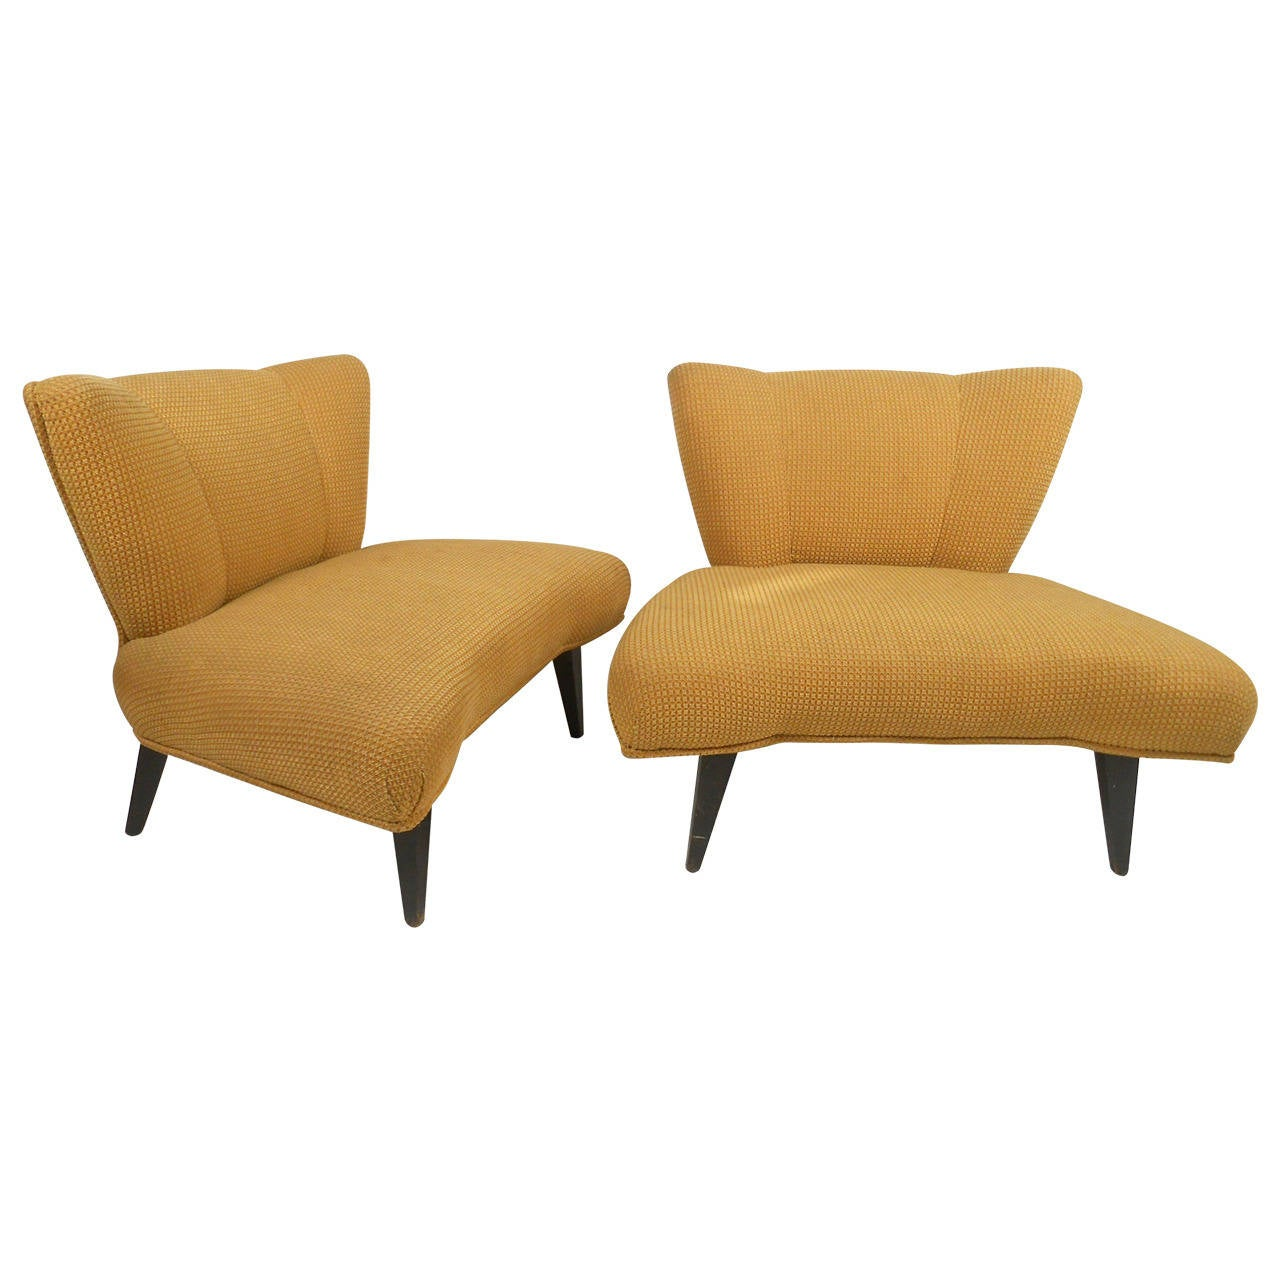 pair of mid century slipper chairs attributed to kroehler - Kroehler Furniture